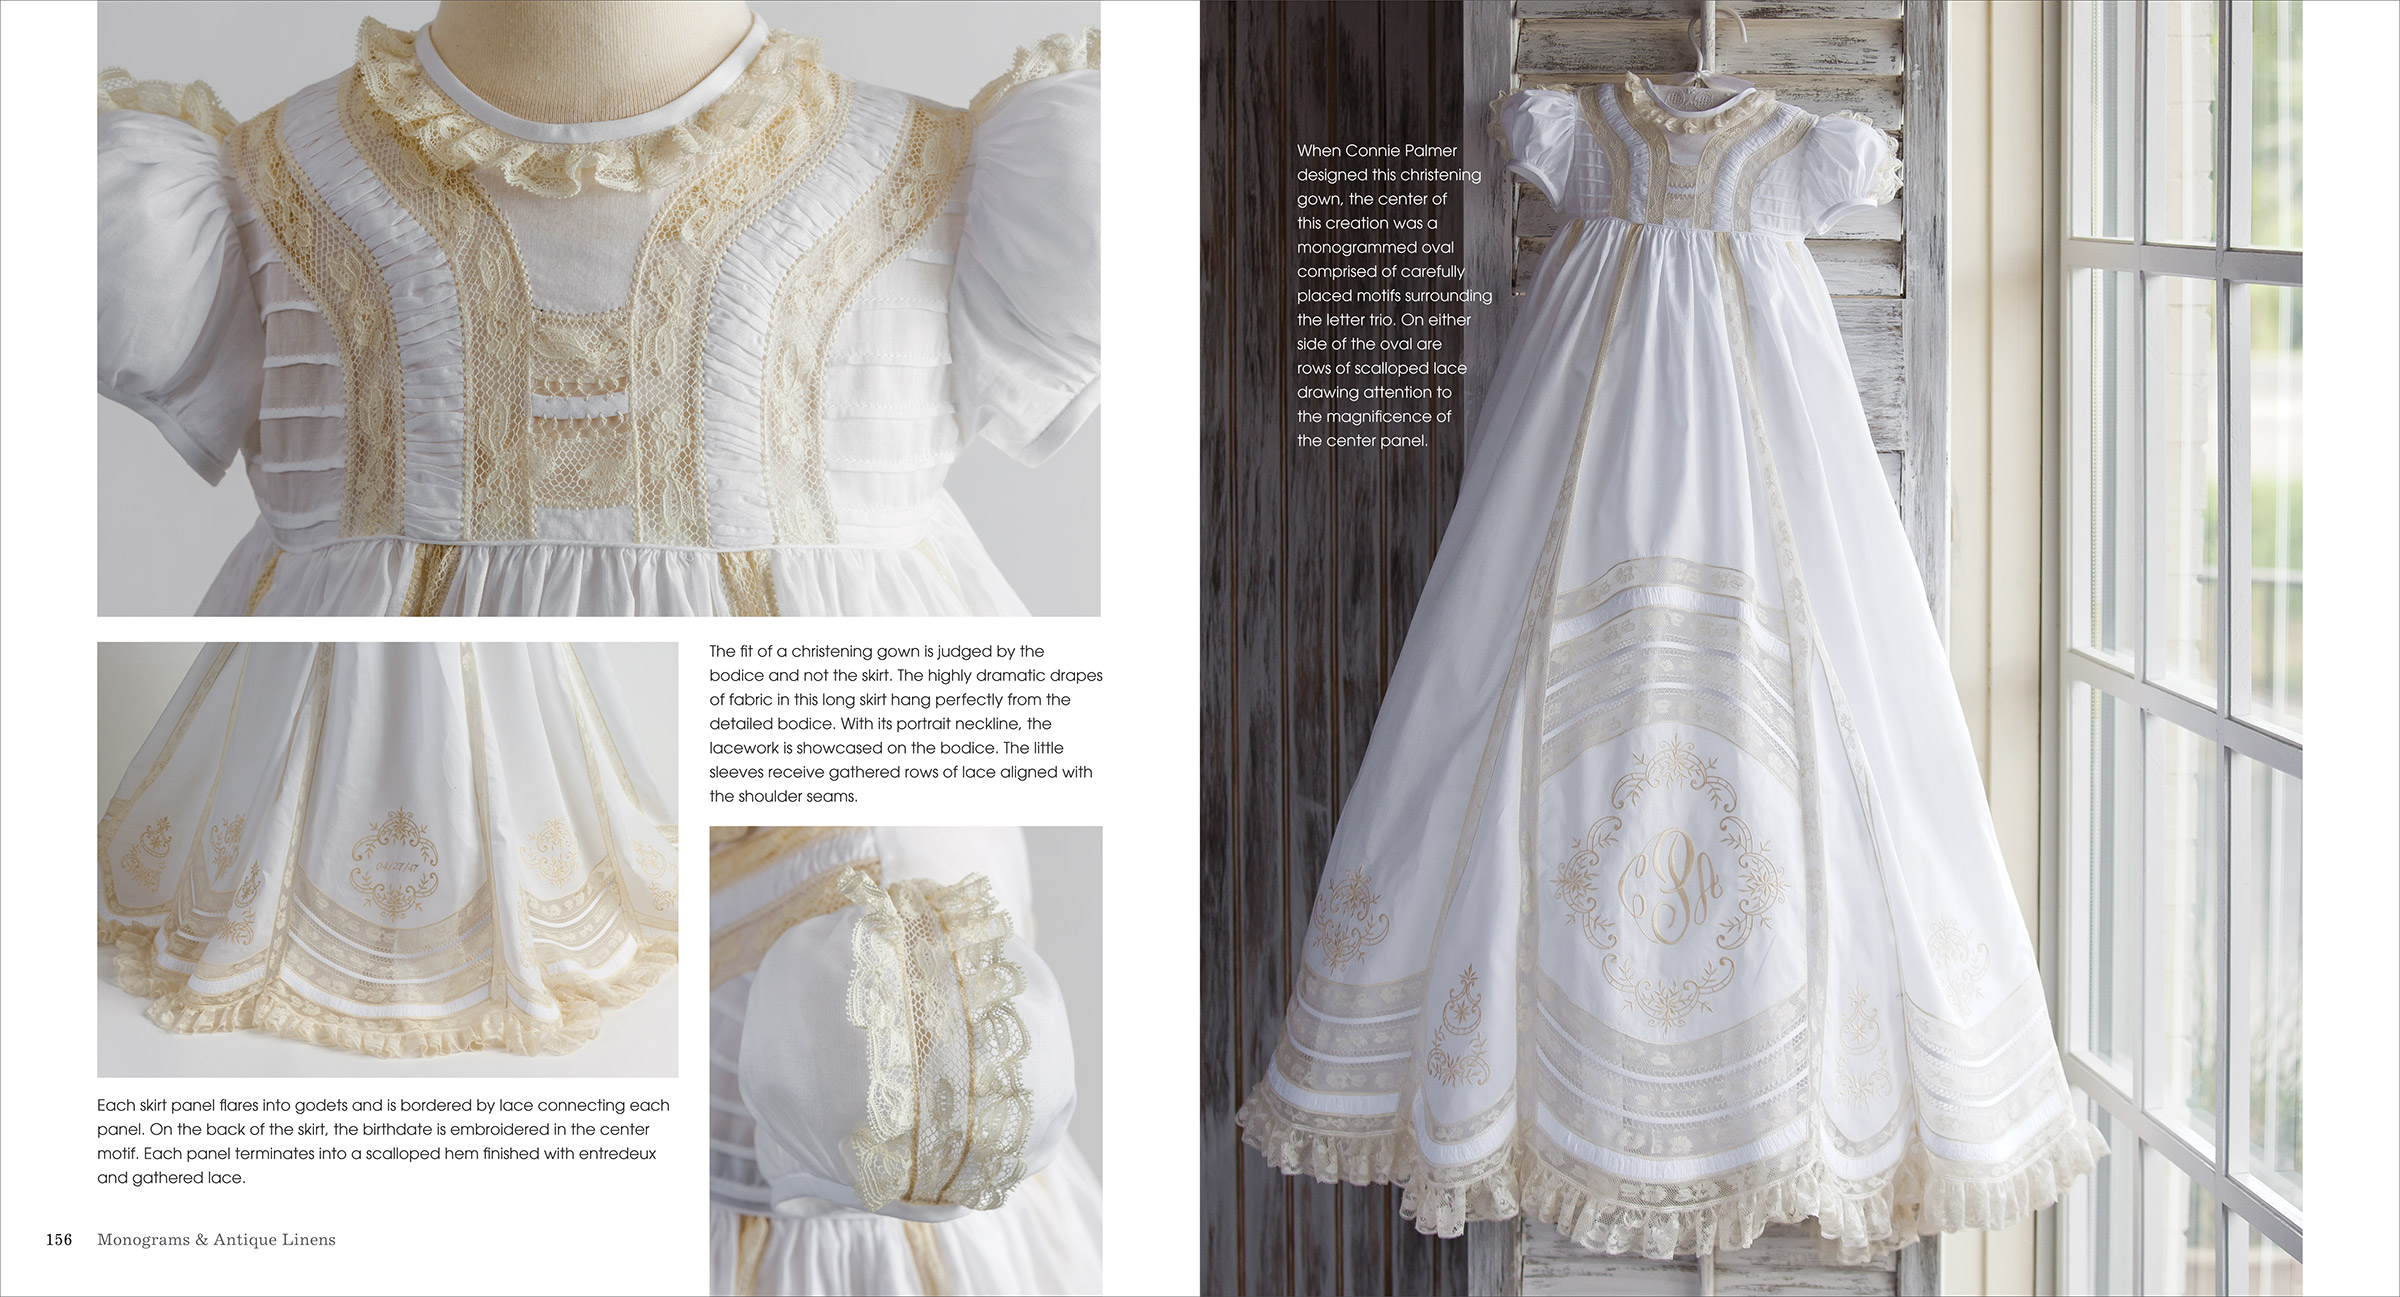 Monograms and Antique Linens Special Preview